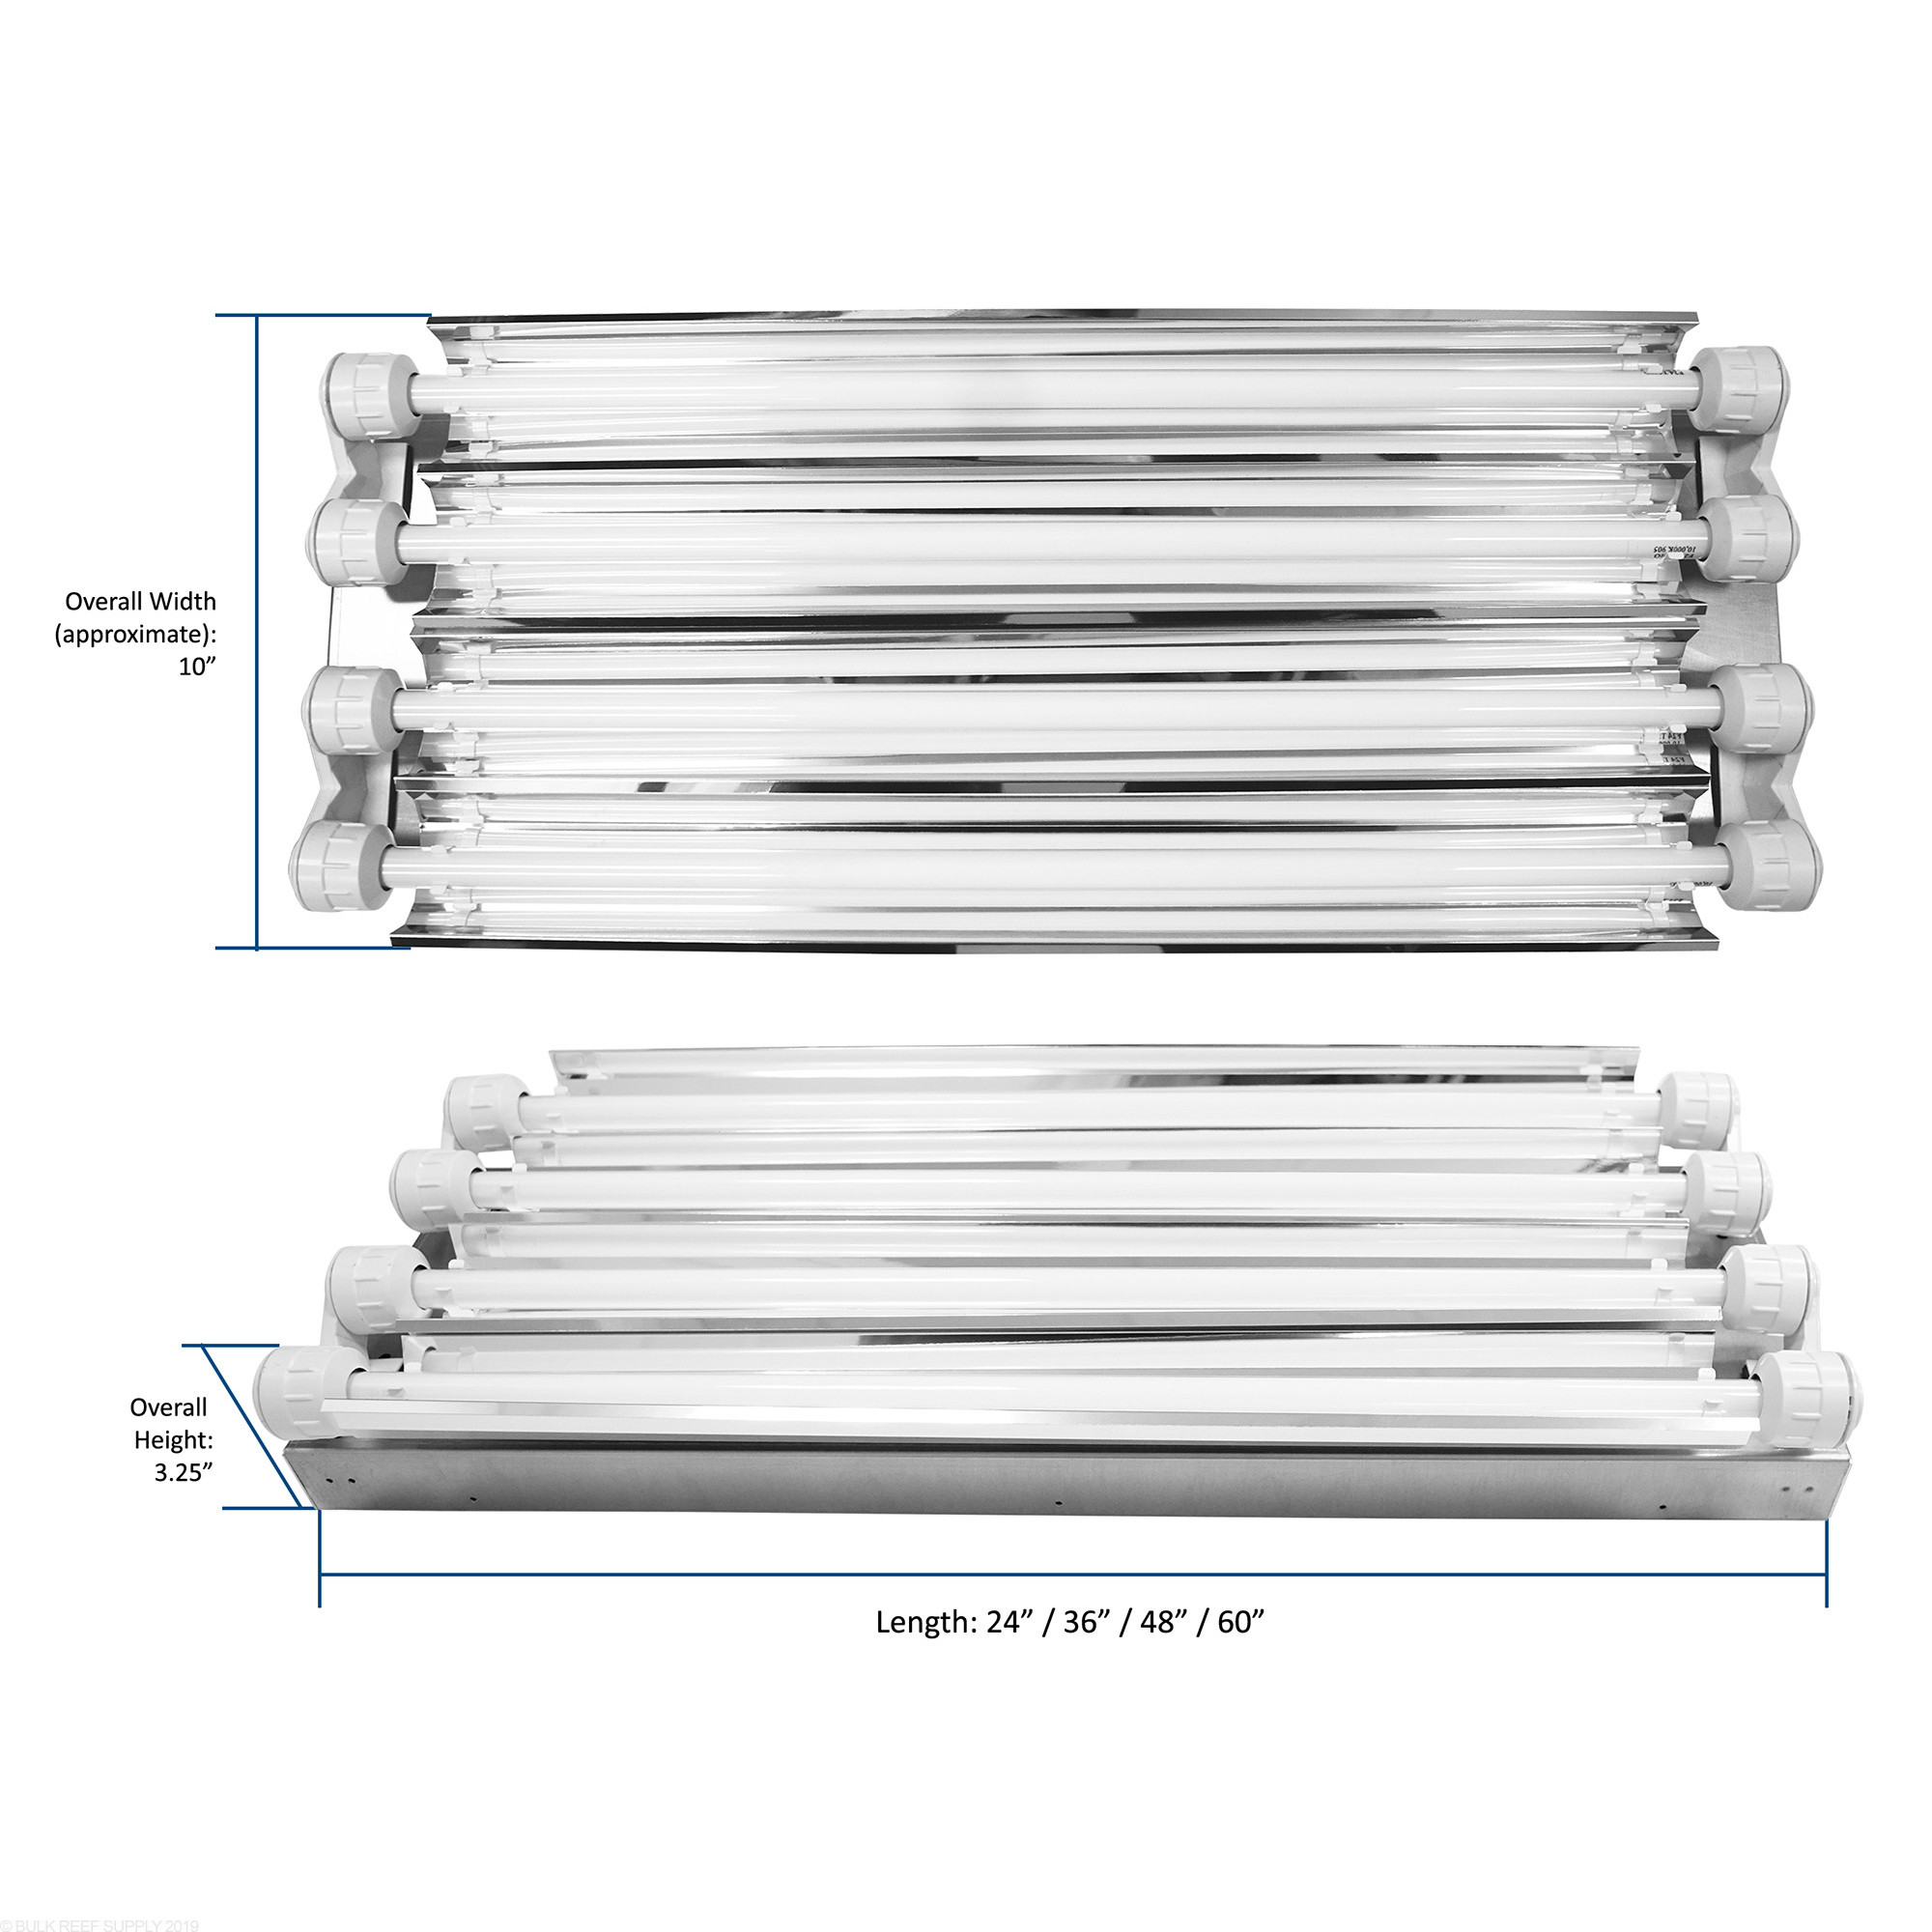 0c88e759ac9a Home  Supra Quad T5 Retrofit Fixture - Reef Brite. Click on image to zoom